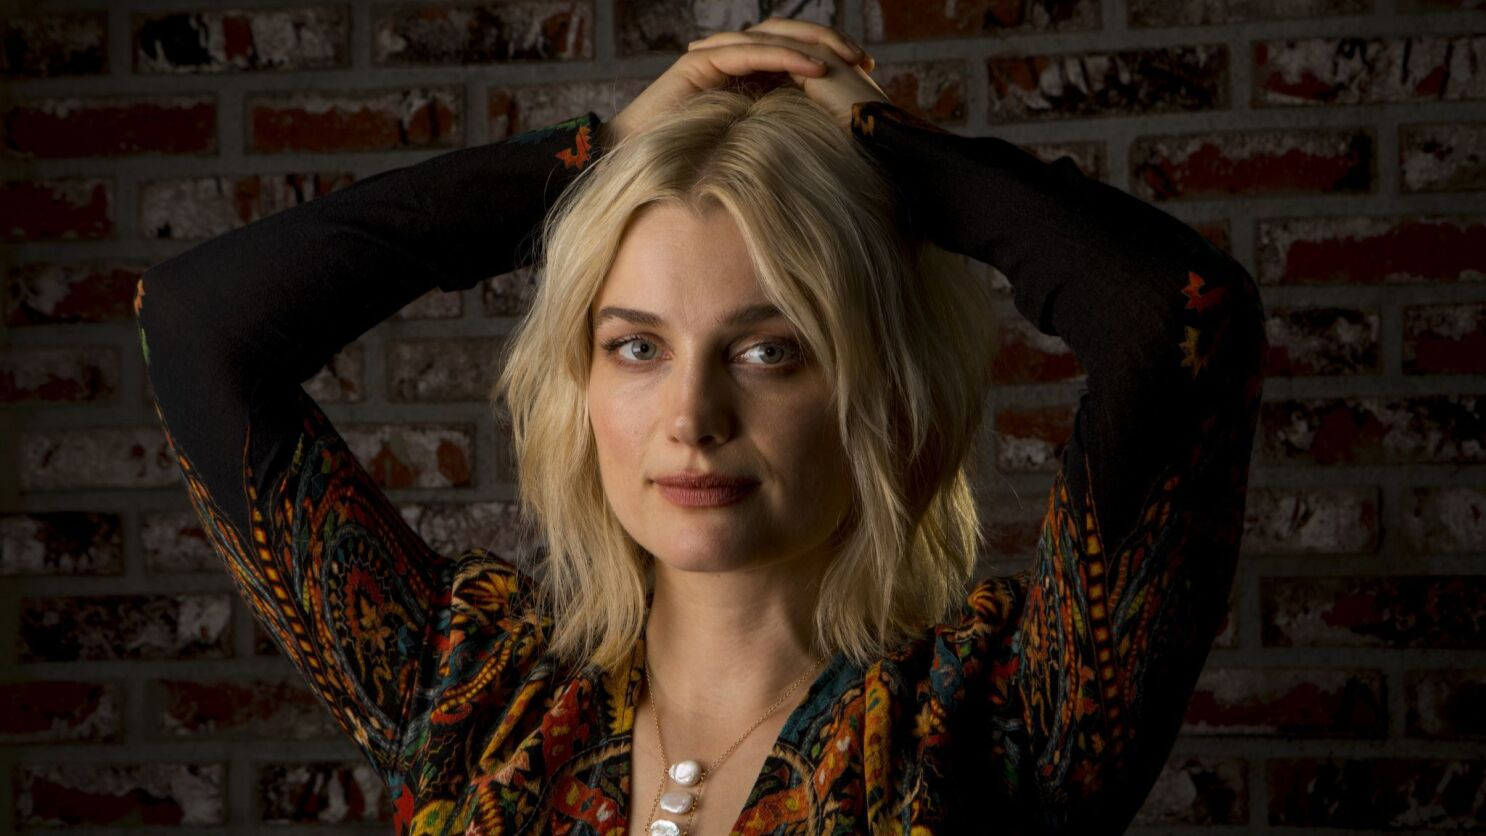 Alison Louder singer-actress alison sudol returns to her first love